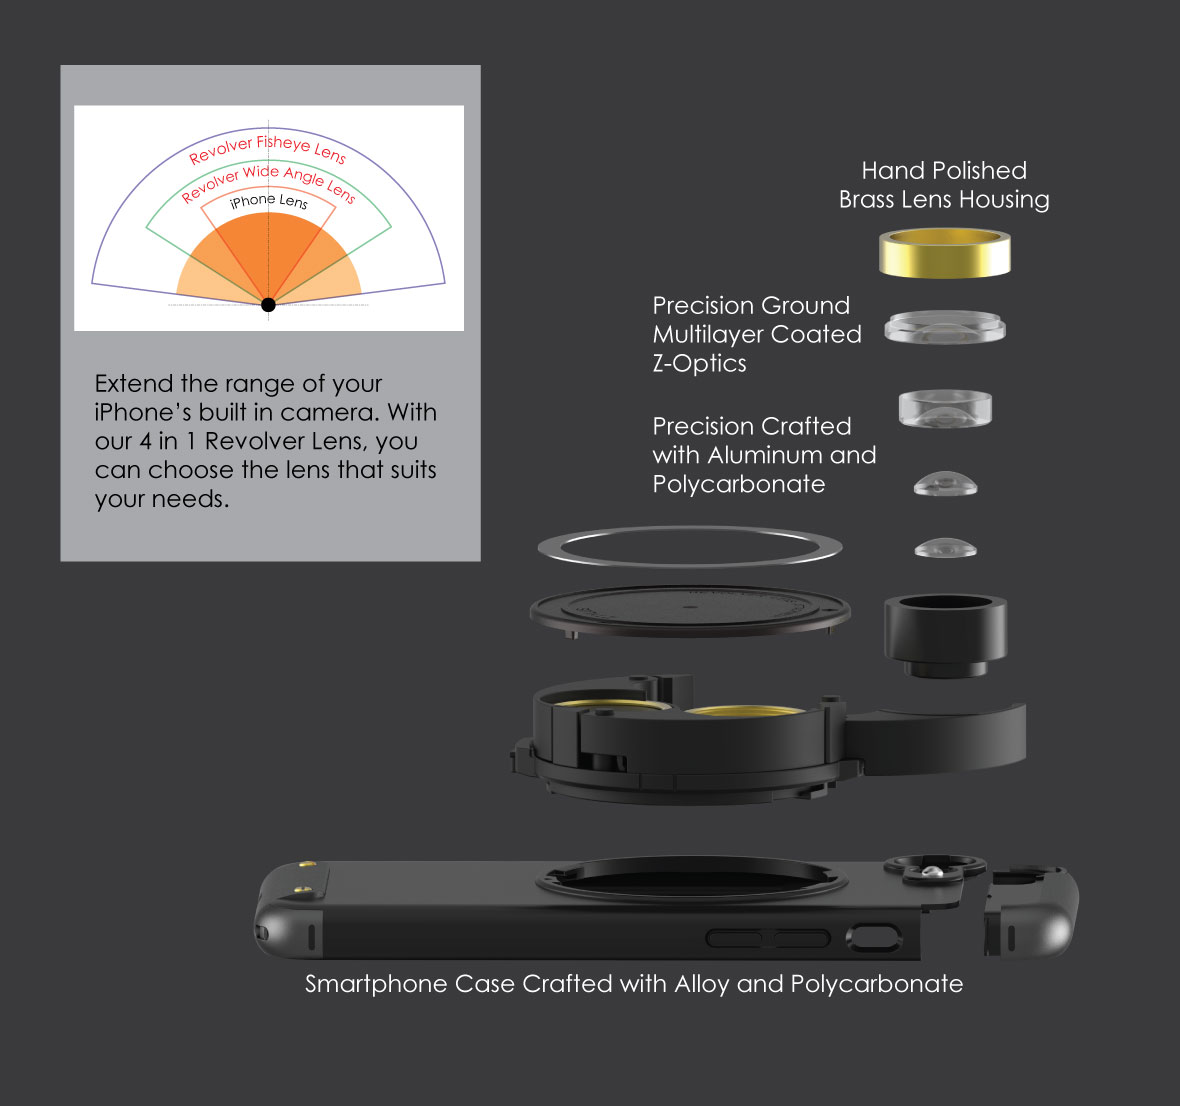 Revolver Lens Kit for iPhone 7: Extend the range of your iPhone's built in camera. With our 4 in 1 Revolver Lens, you can choose the lens that suits your needs.